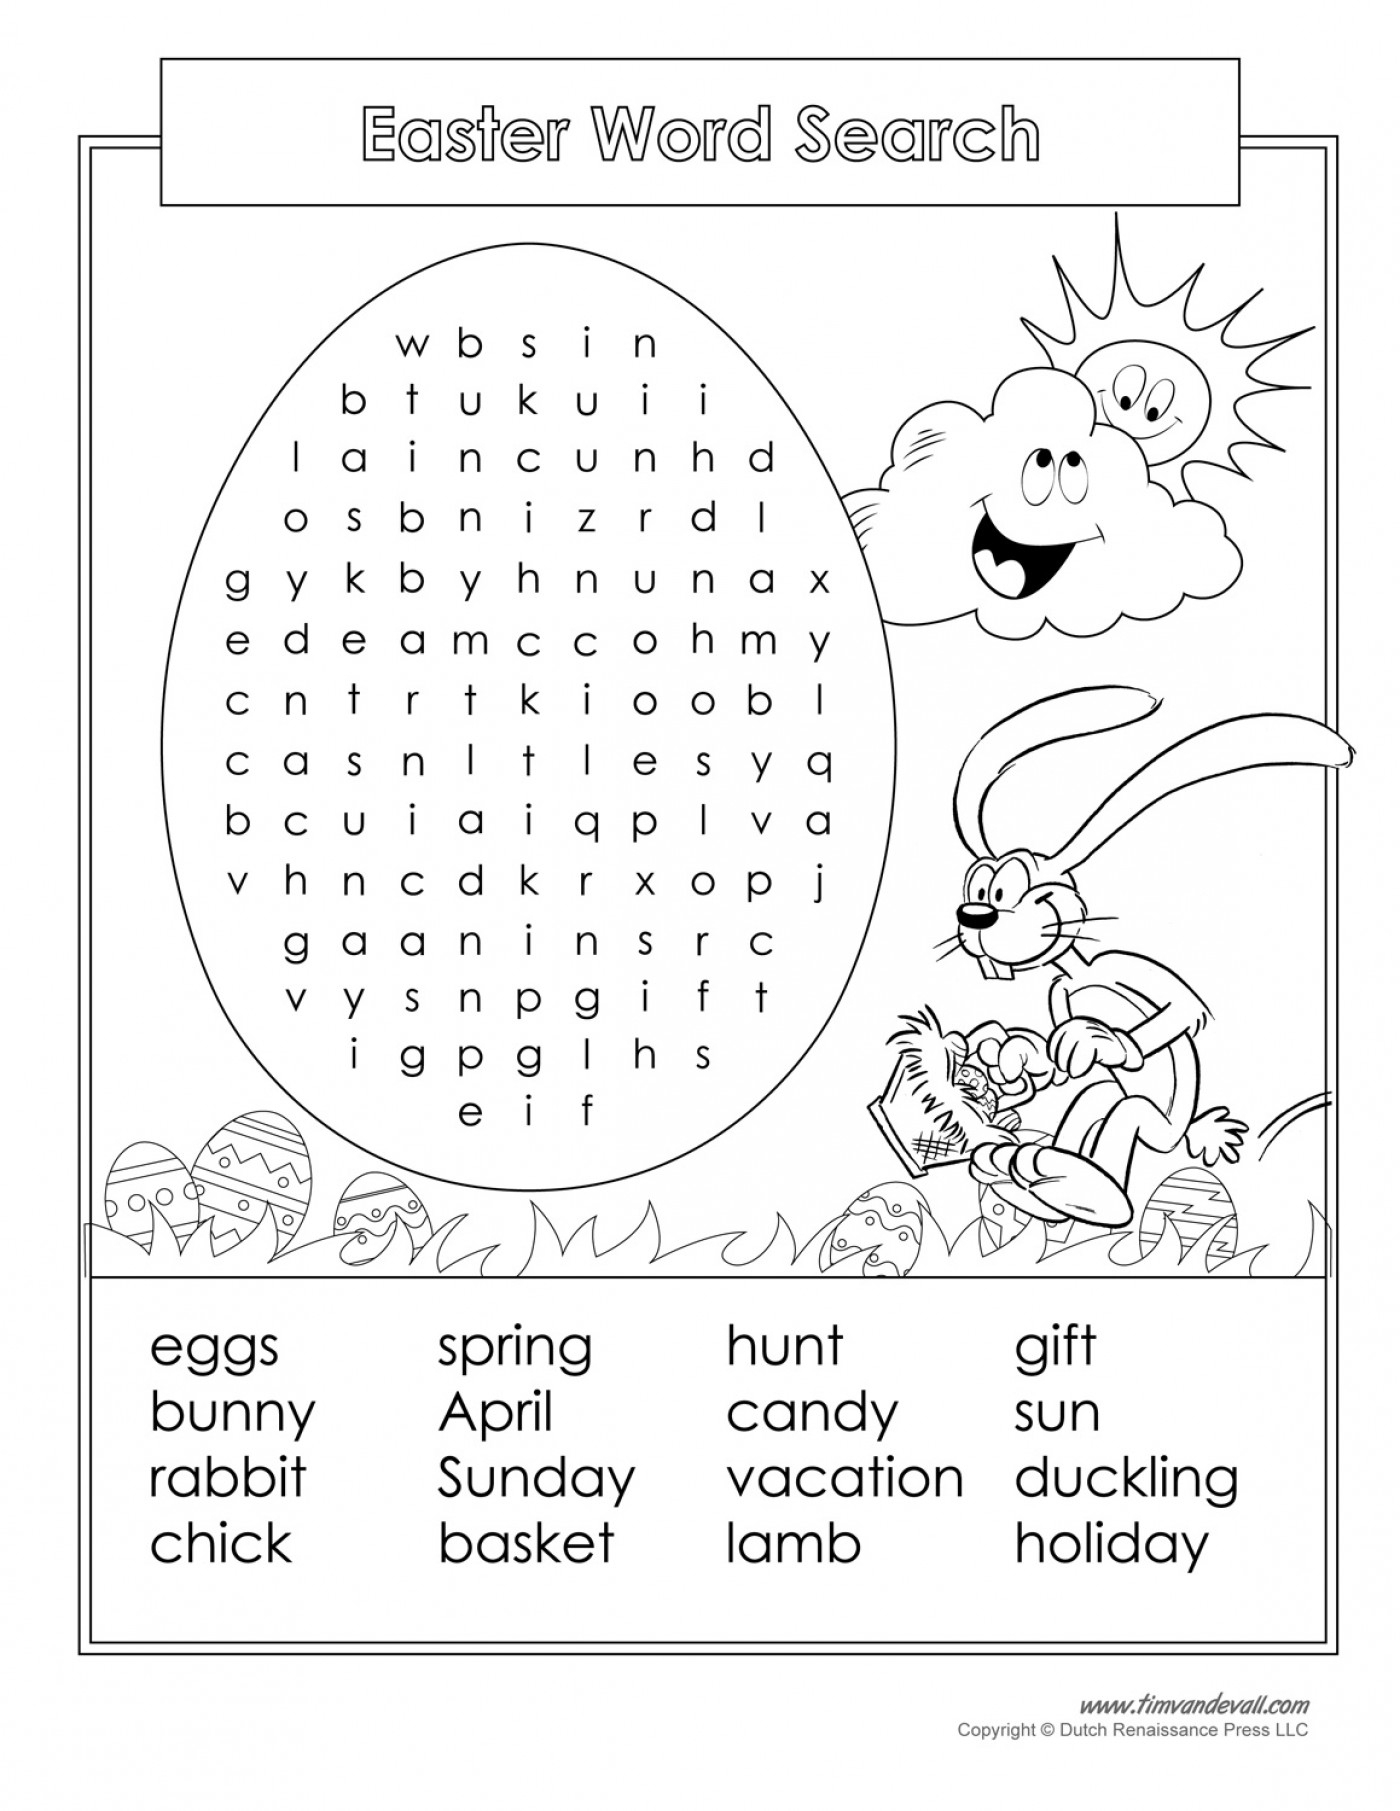 Easter Crossword Puzzle Printable Crosswords Free Word - Free - Printable Easter Crossword Puzzles For Adults